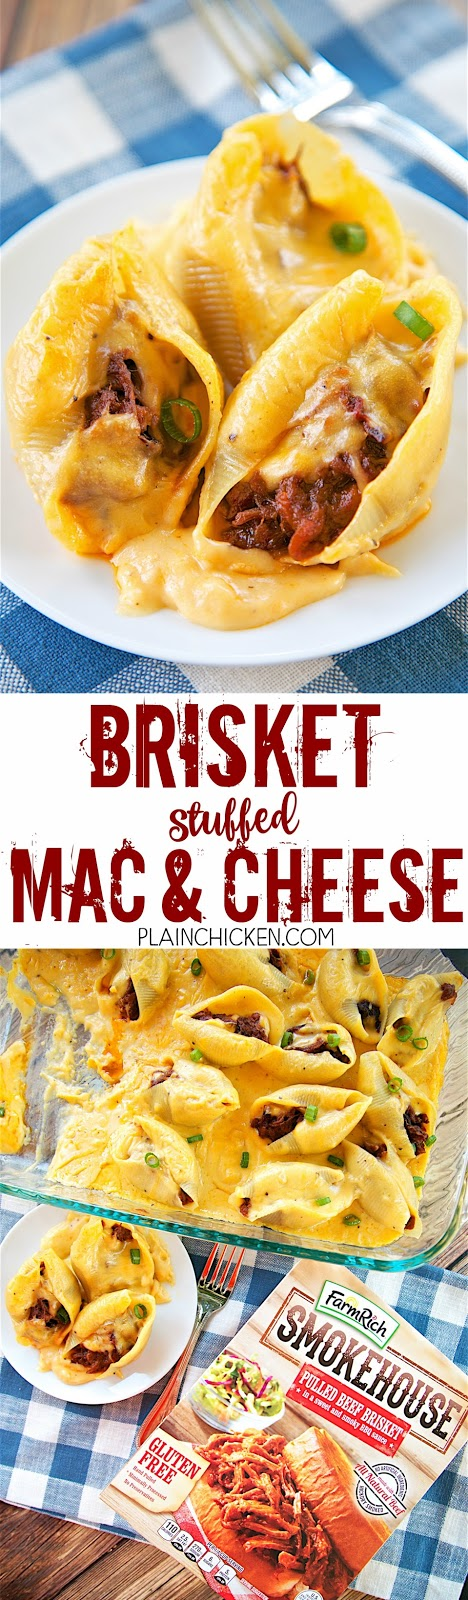 Brisket Stuffed Mac and Cheese - Plain Chicken